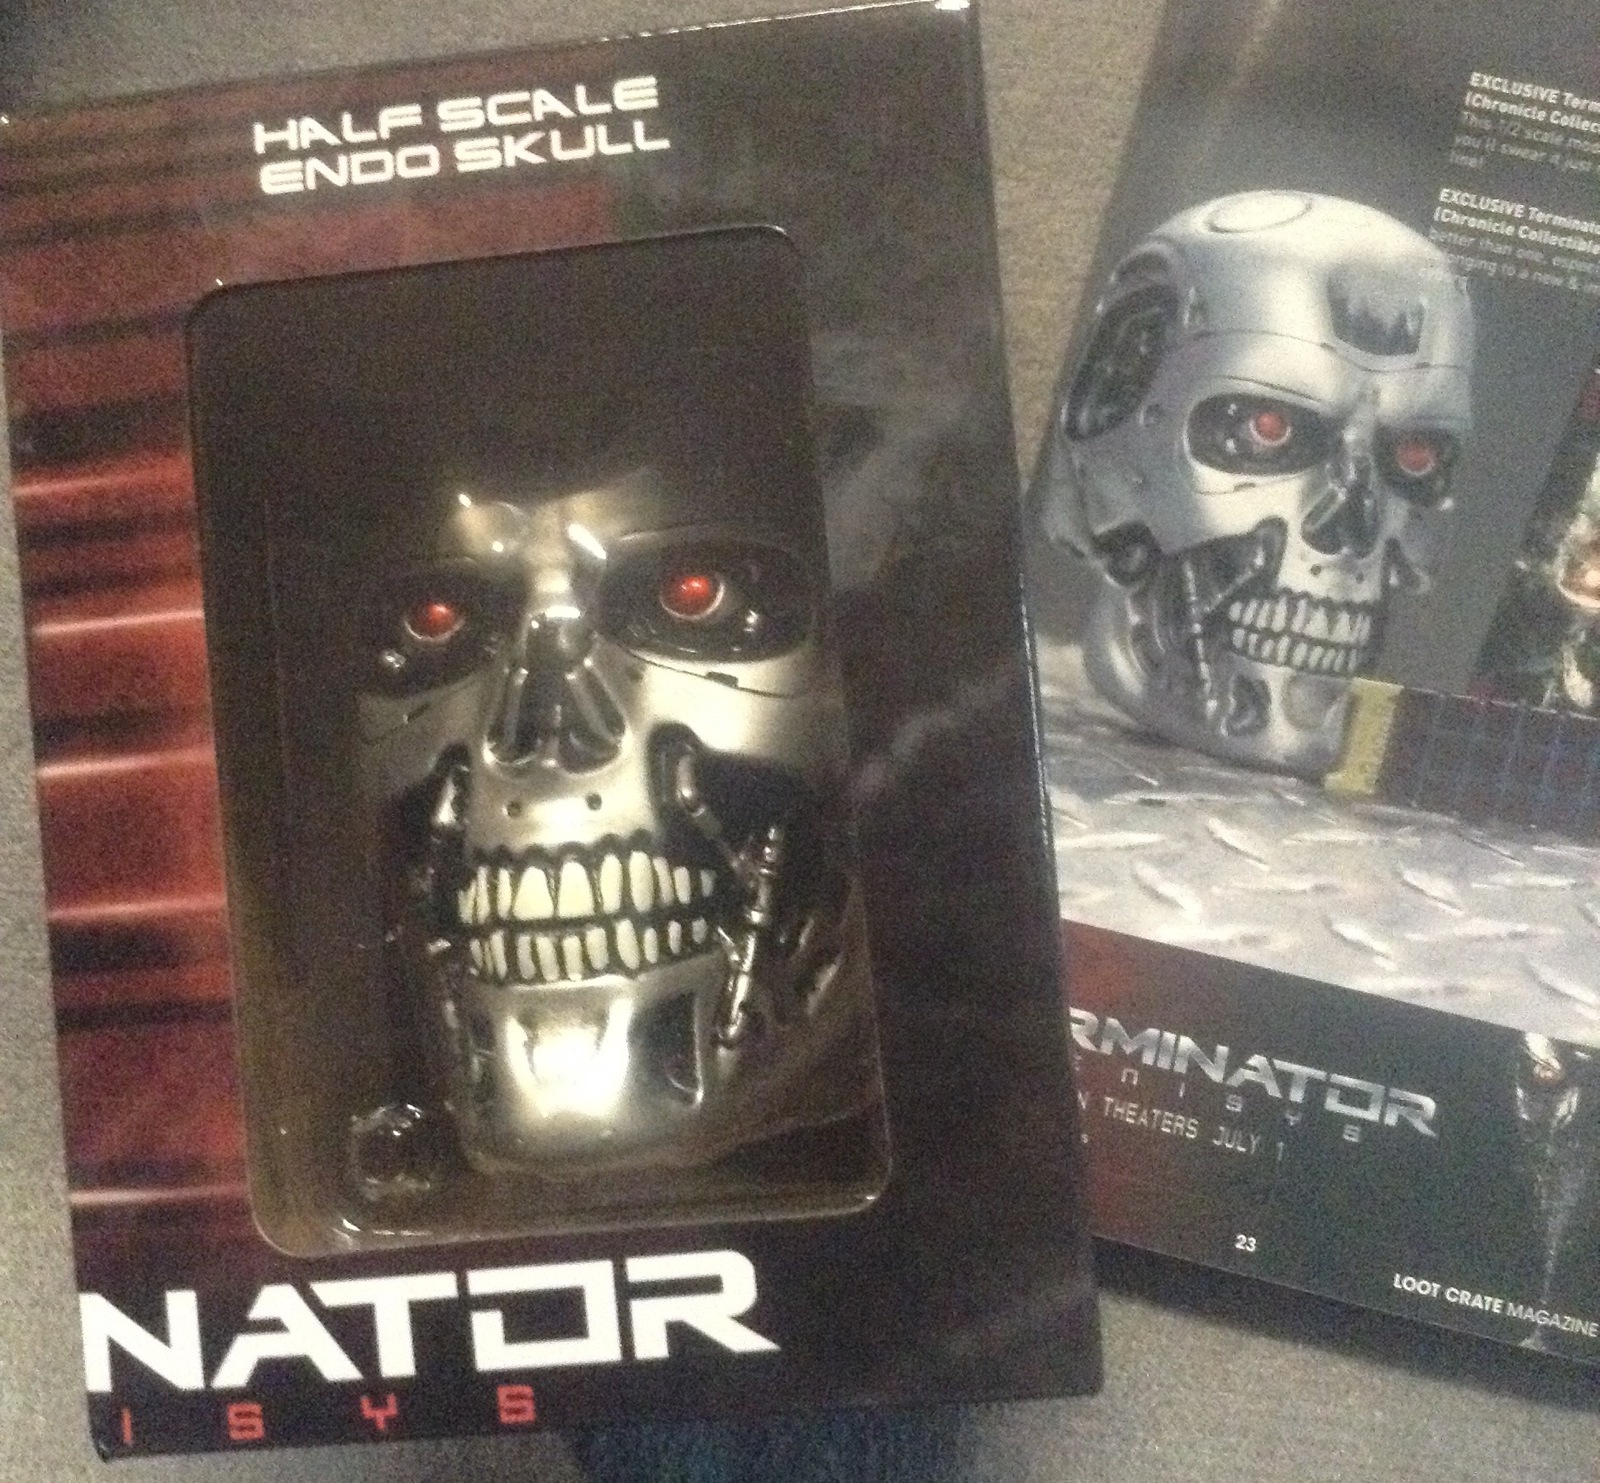 Terminator Genisys Half Scale Endo Skull Replica Movie Loot Crate Exclusive